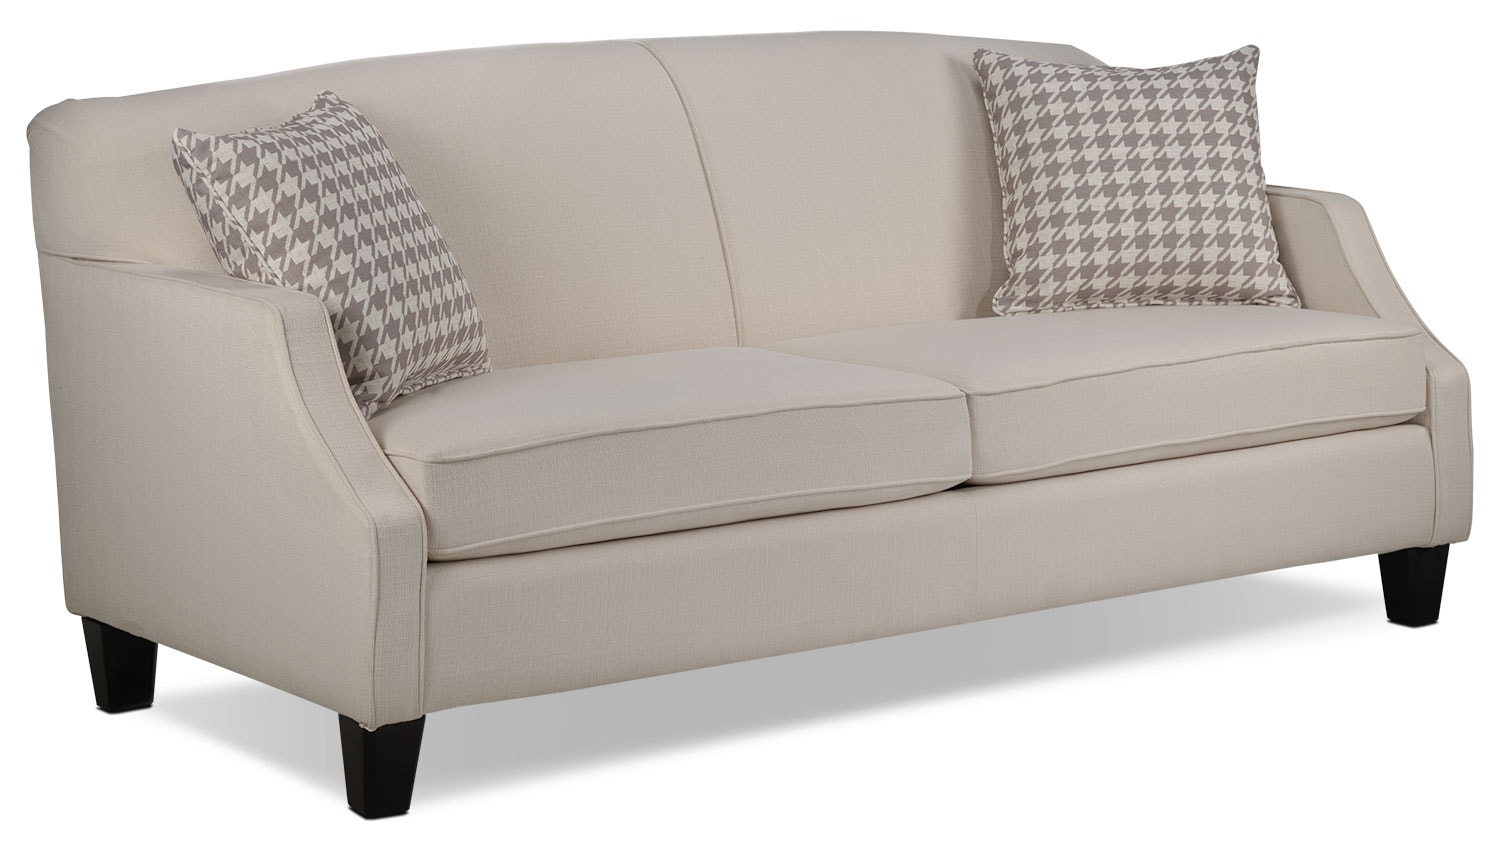 Living Room Furniture - Klein Sofa - Ivory